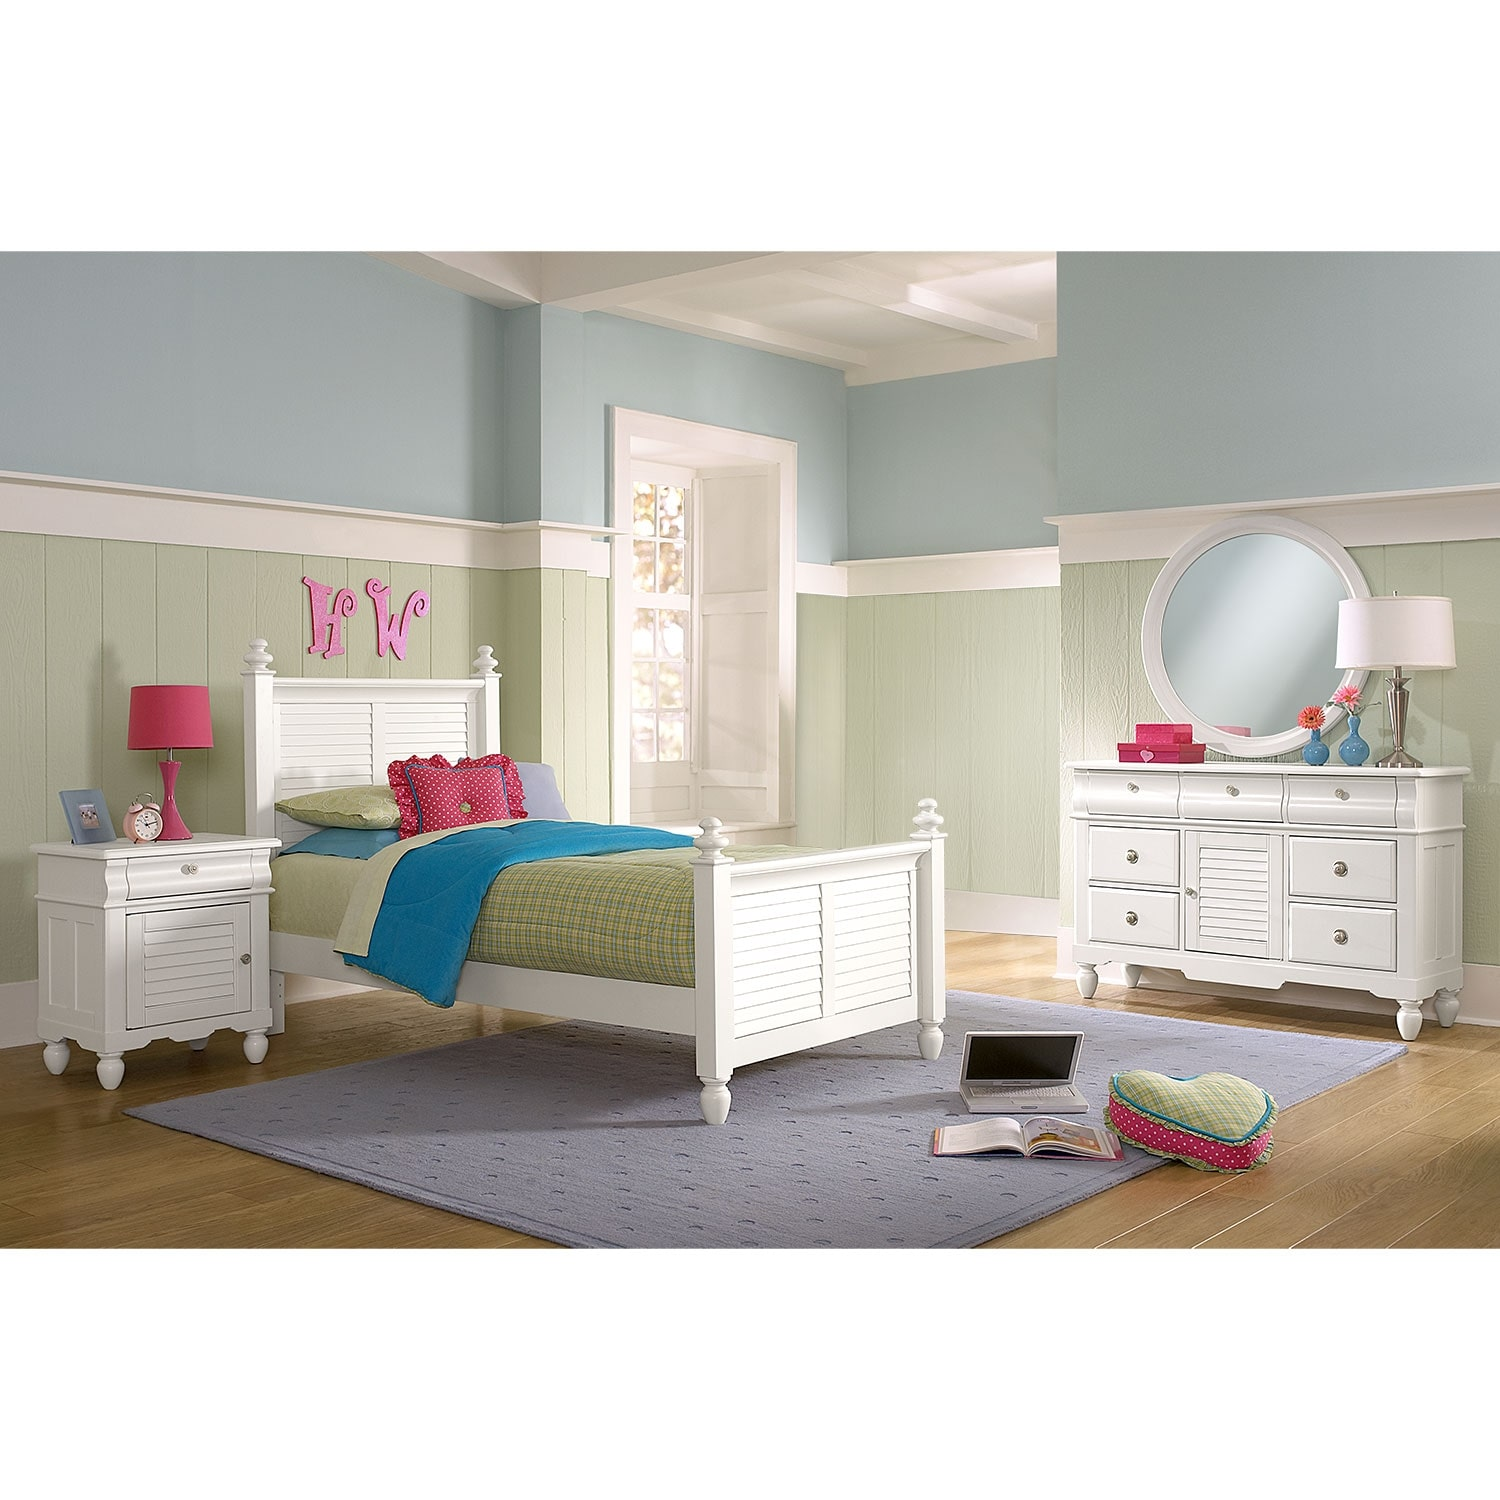 Kids Furniture - Seaside 6-Piece Twin Bedroom Set - White